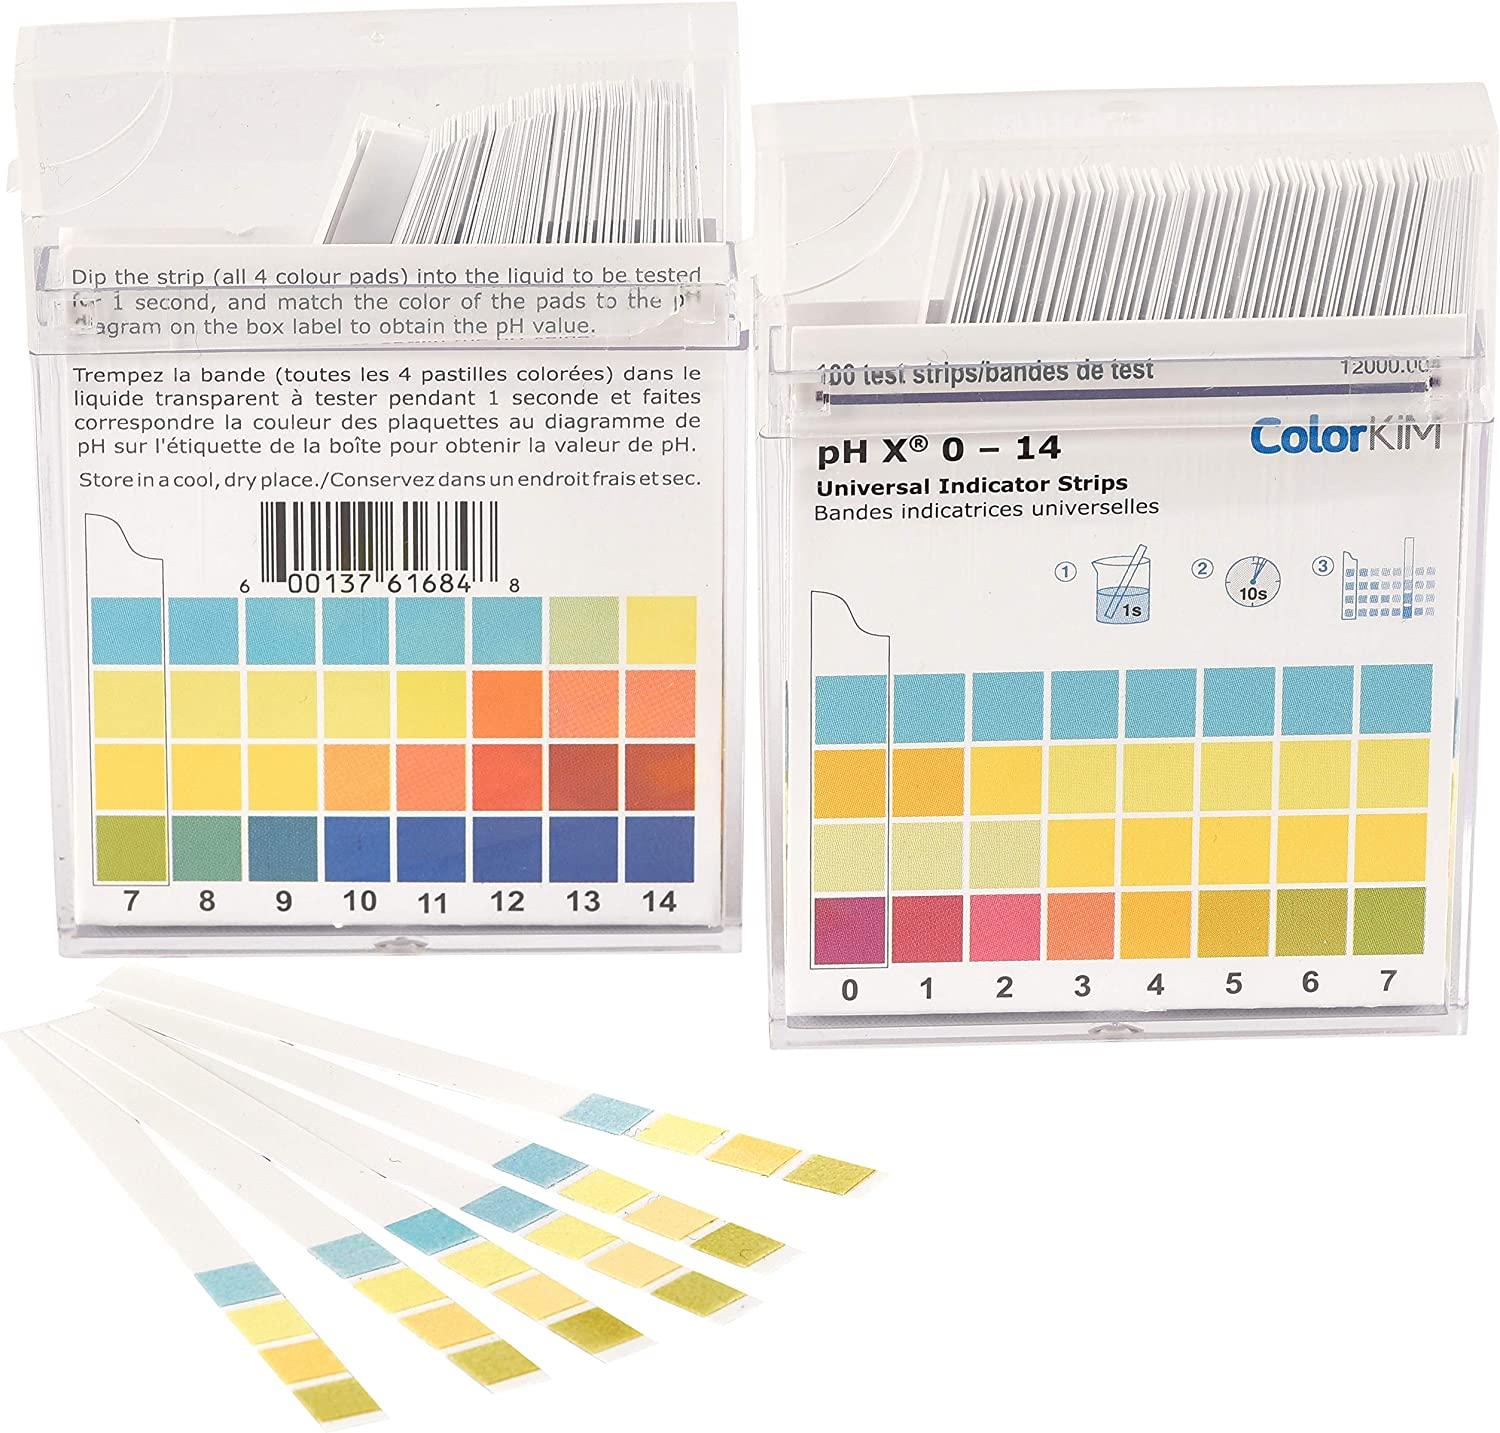 pH Strips, 0-14 Scale, for Testing Water pH, Made of Premium Litmus Paper (100 Strips)